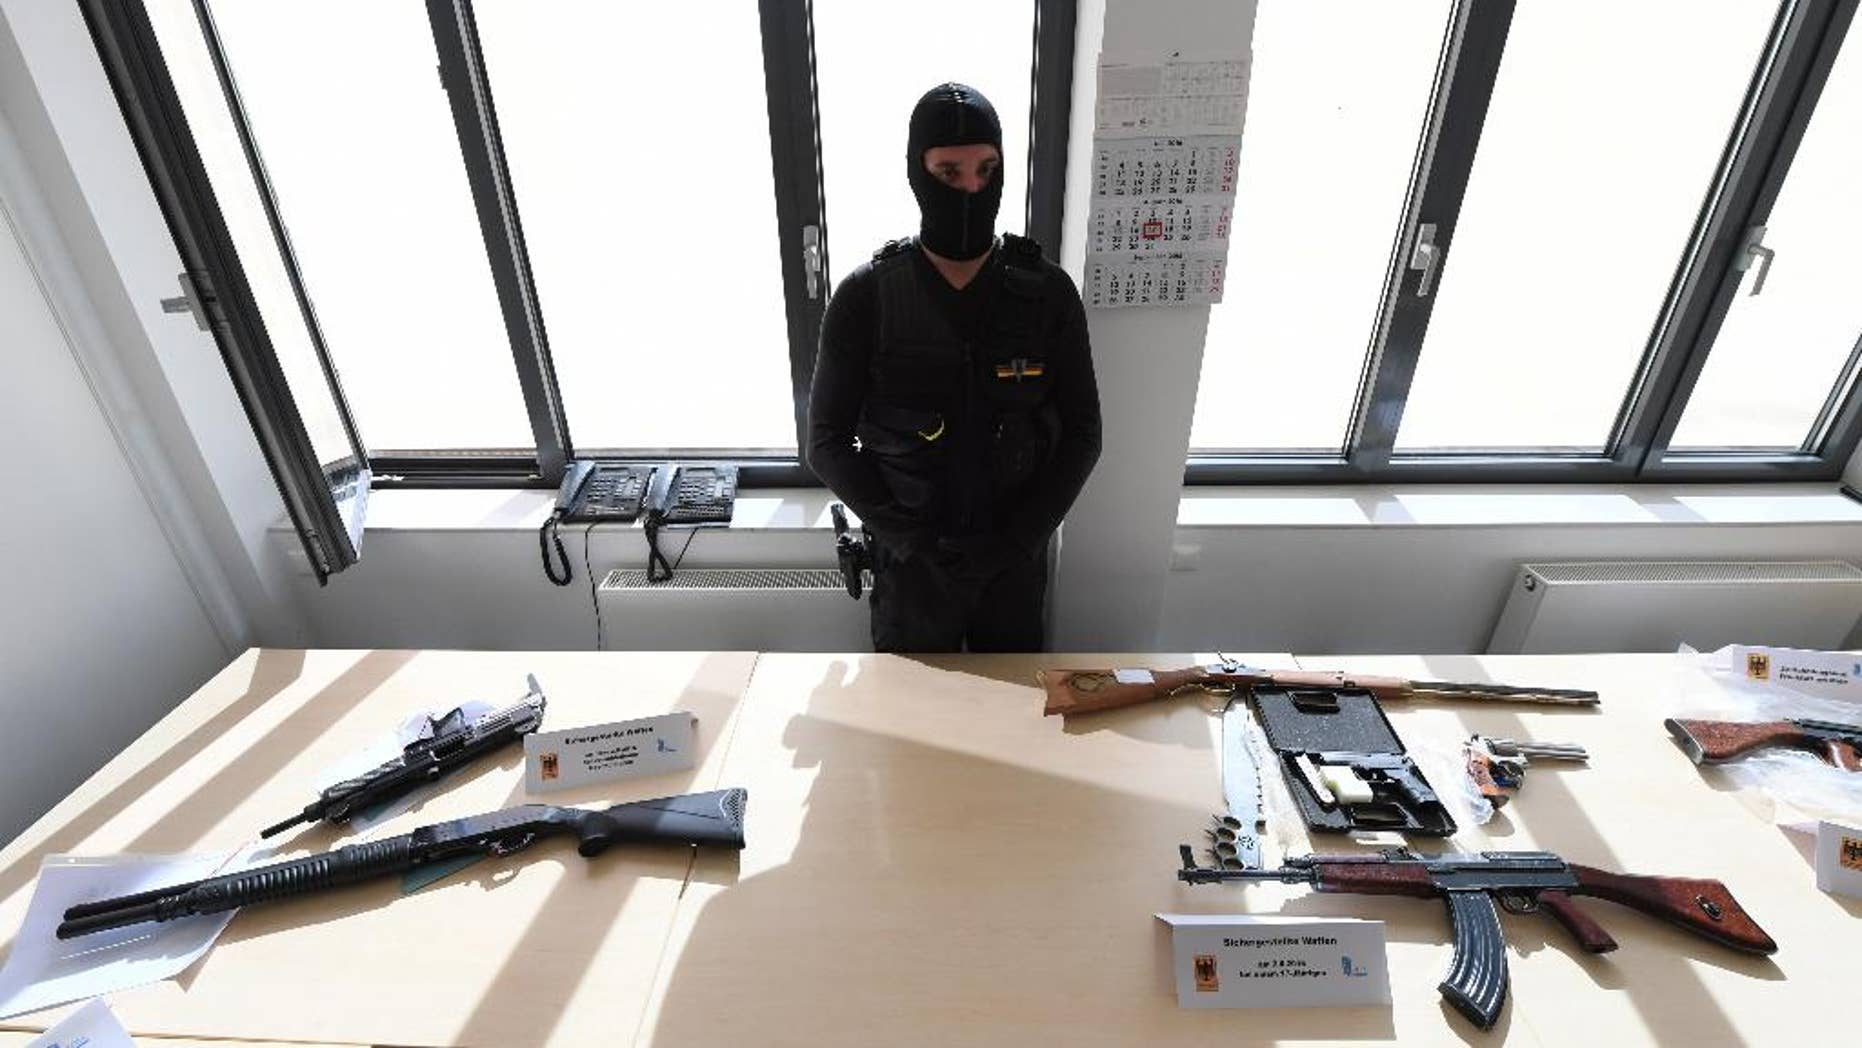 The Customs Office in Frankfurt displays  seized  firearms  at a press conference in Frankfurt, Germany, Wednesday Aug. 17, 2016.  German prosecutors say the teenager who went on a shooting rampage at a Munich mall last month, killing nine people and then himself, paid 4,350 euros (nearly $4,900) for his gun and ammunition. Authorities on Tuesday arrested a 31-year-old unemployed salesman accused of selling the Glock 17 pistol to the 18-year-old gunman. That connection surfaced as the suspected dealer was being investigated for other sales. (Arne Dedert/dpa via AP)